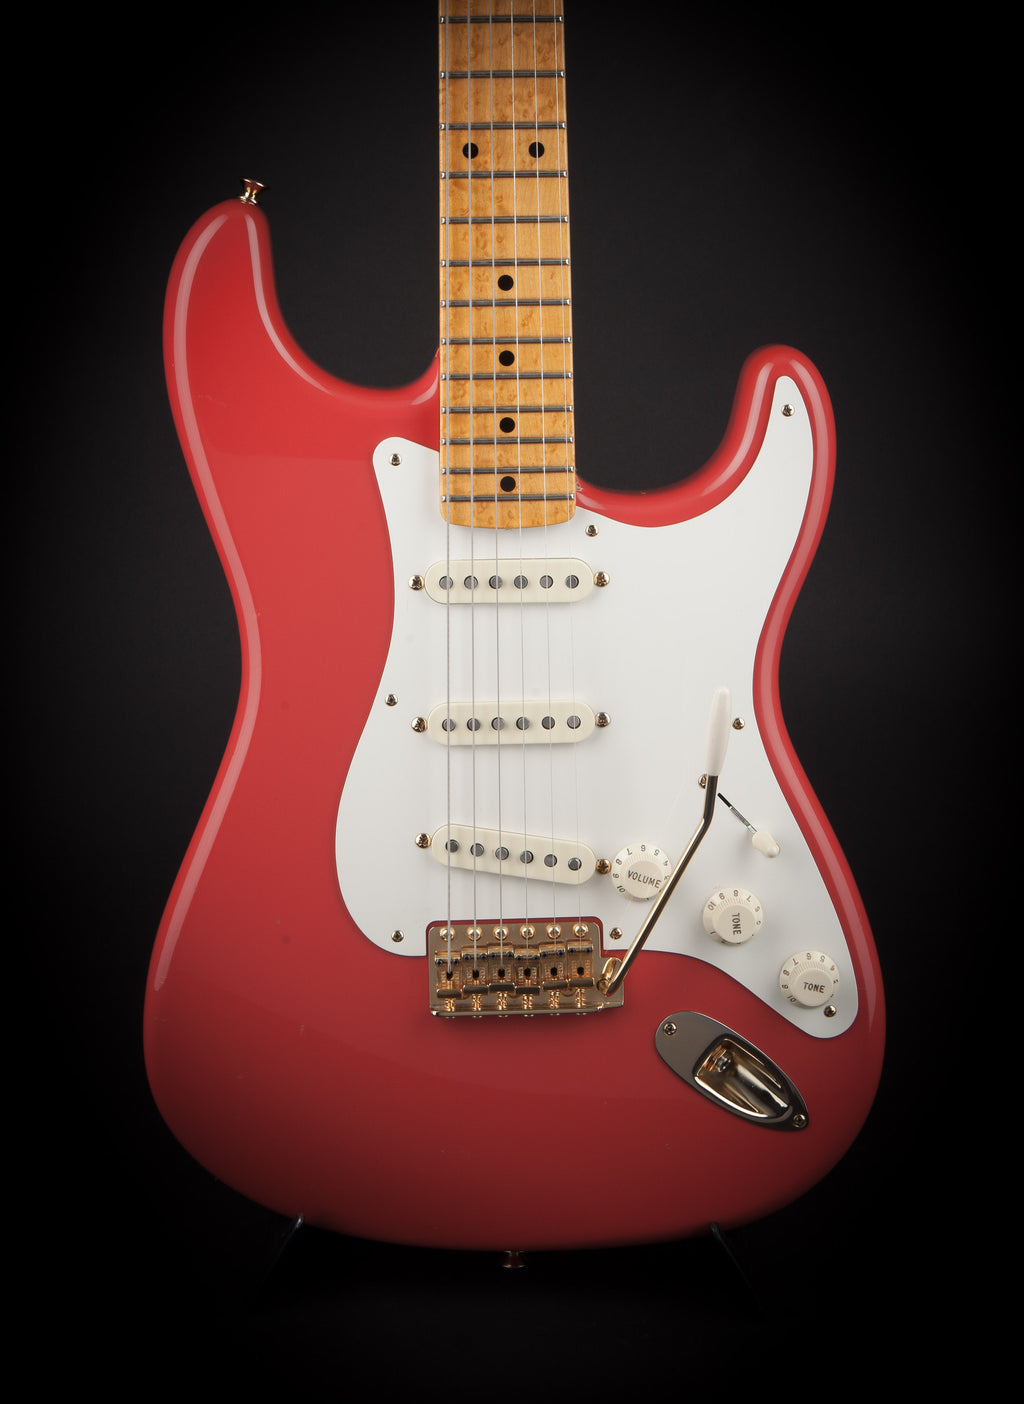 Fender Custom Shop: 59 Stratocaster NOS Fiesta Red Master Builder designed by Greg Fessler R80651